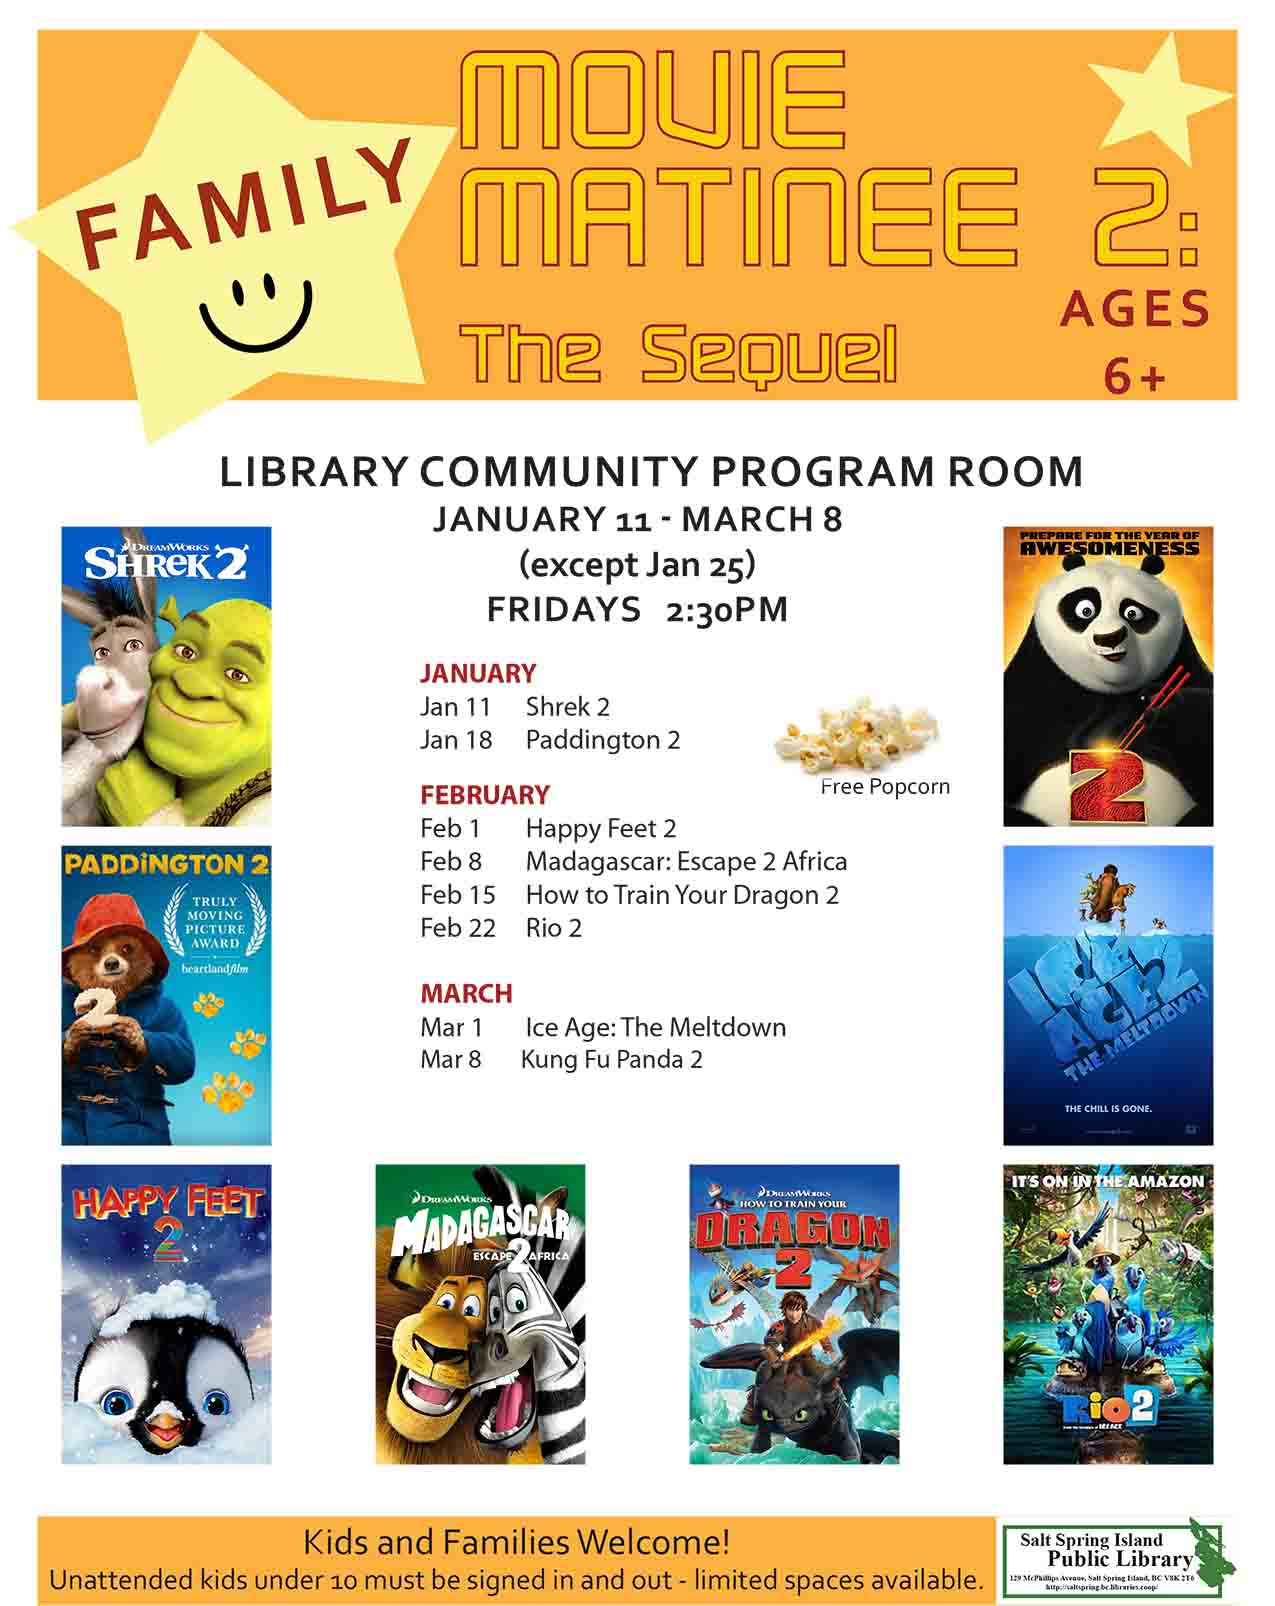 Family Movie Matinee 2: The Sequel @ Community Program Room